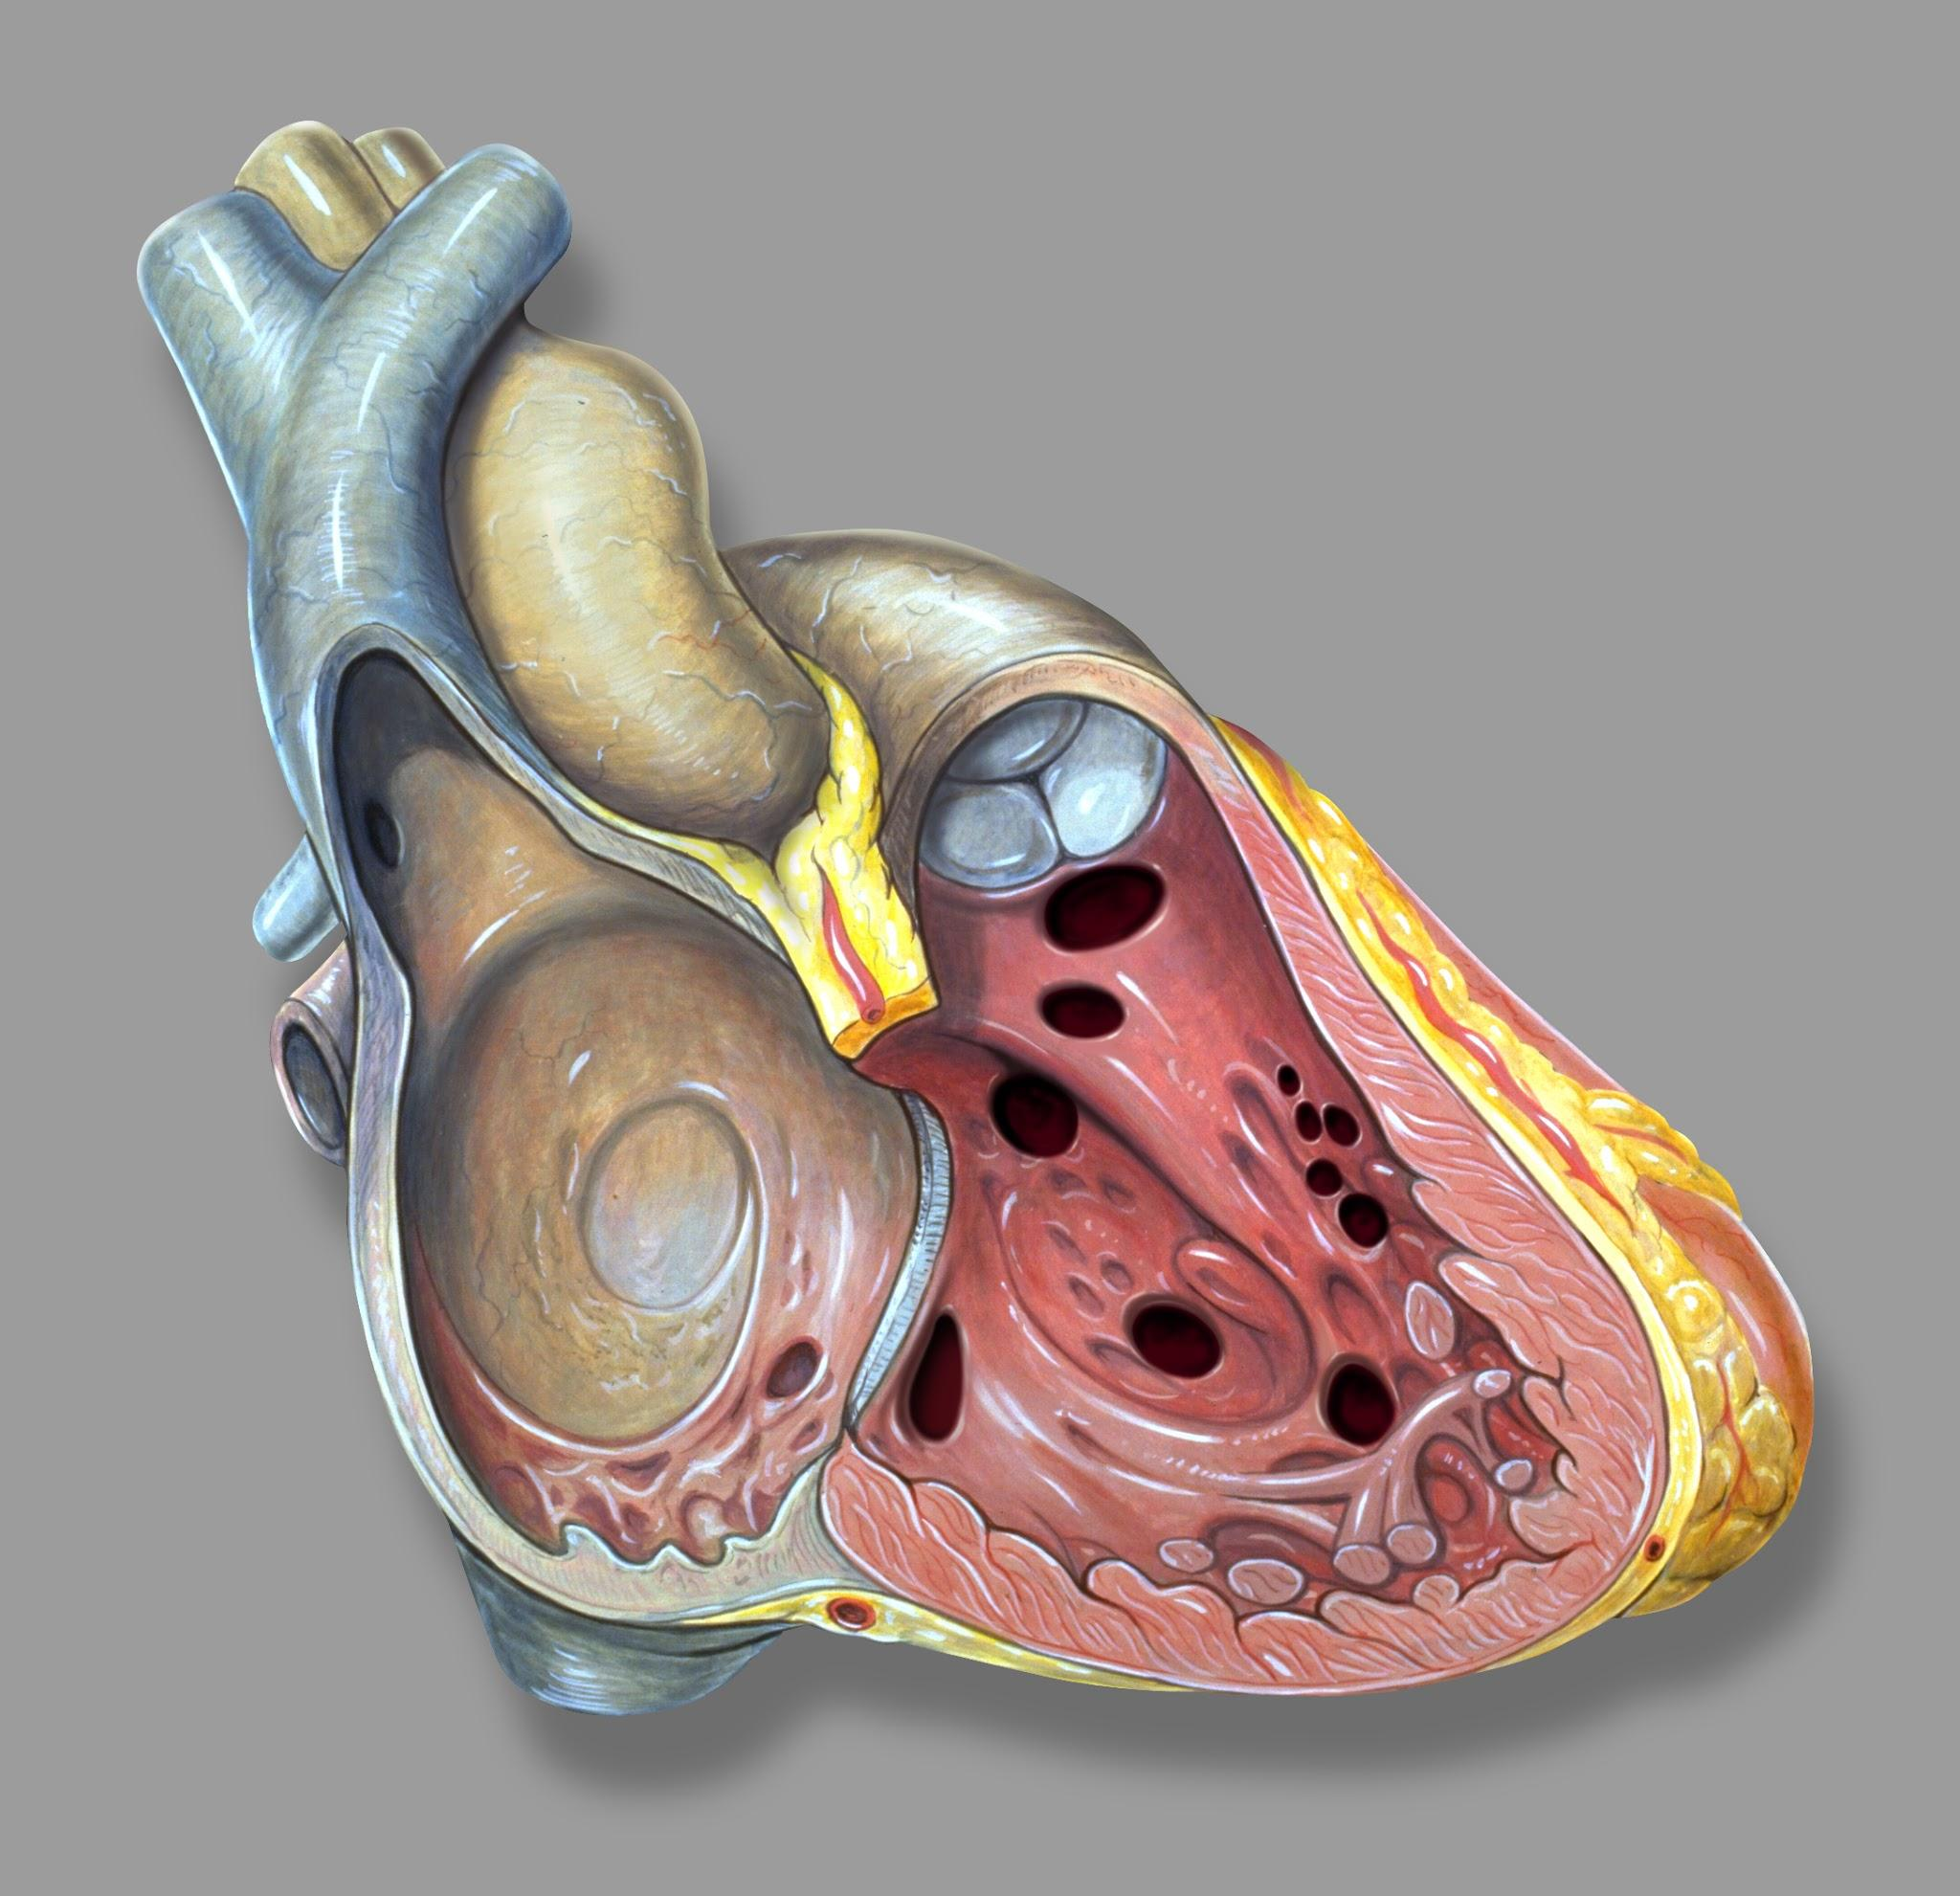 Ventricular Septal Defect: Symptoms, risks and prevention